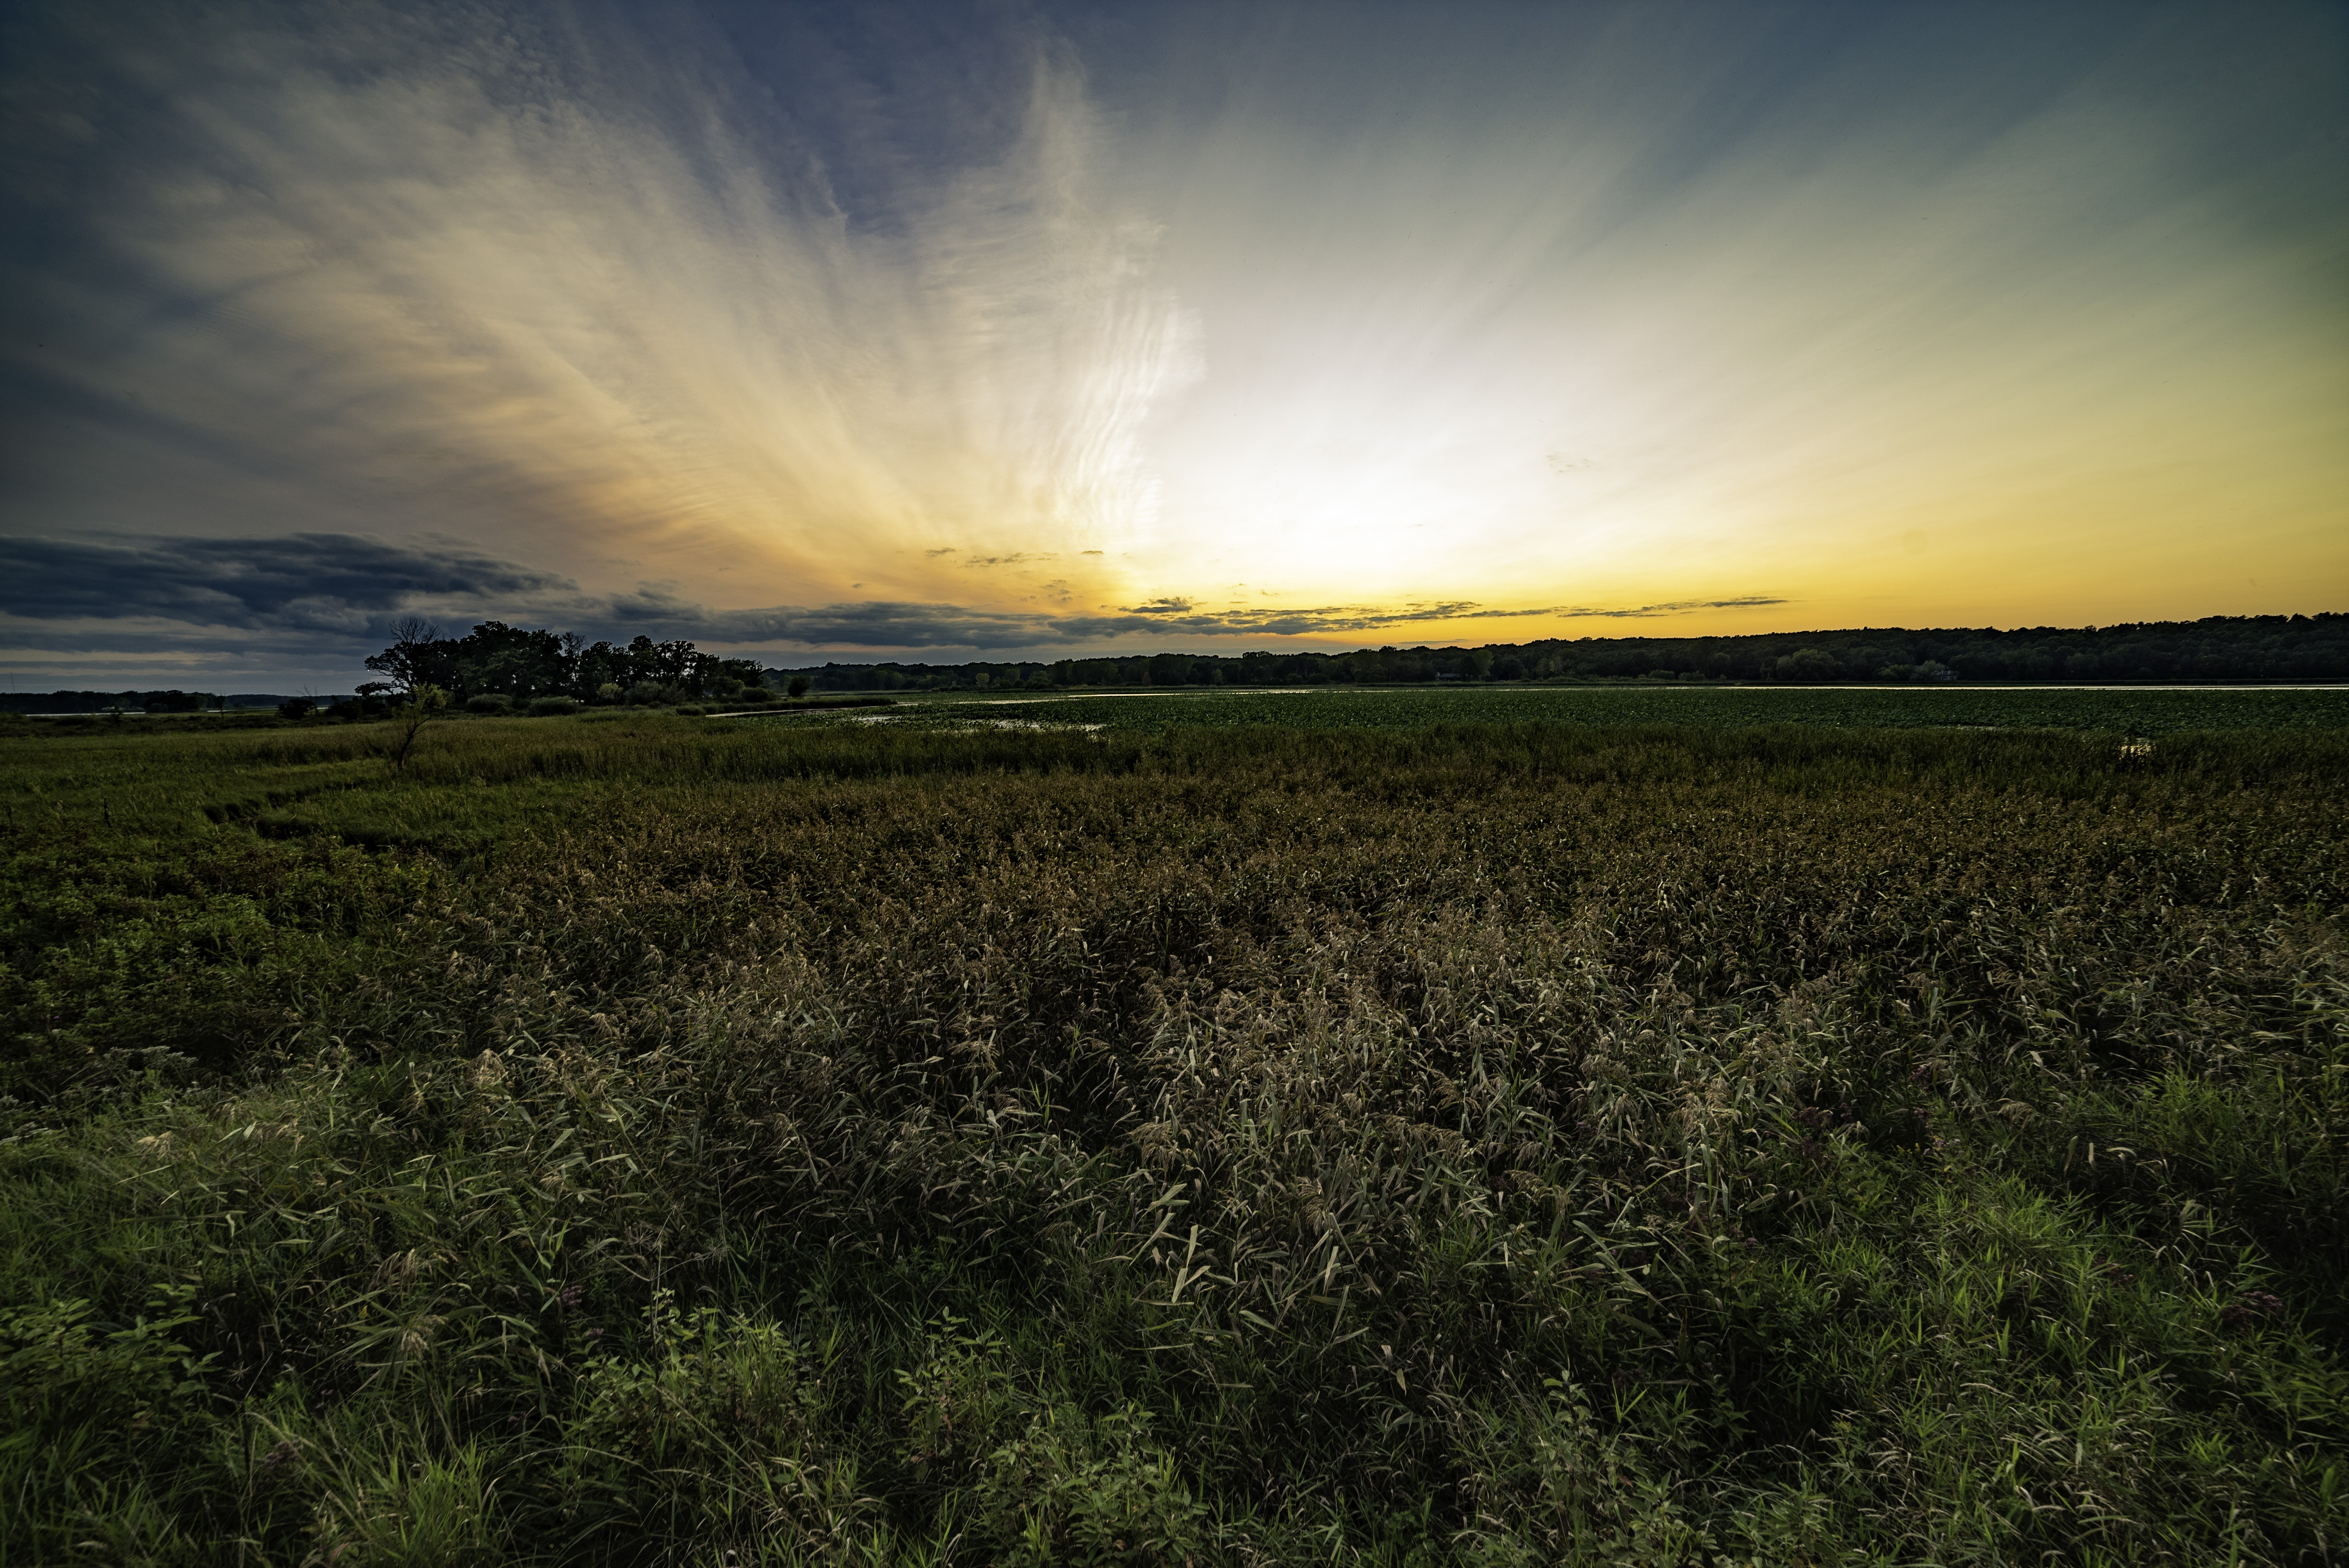 landscape photography of green grass field at golden hour